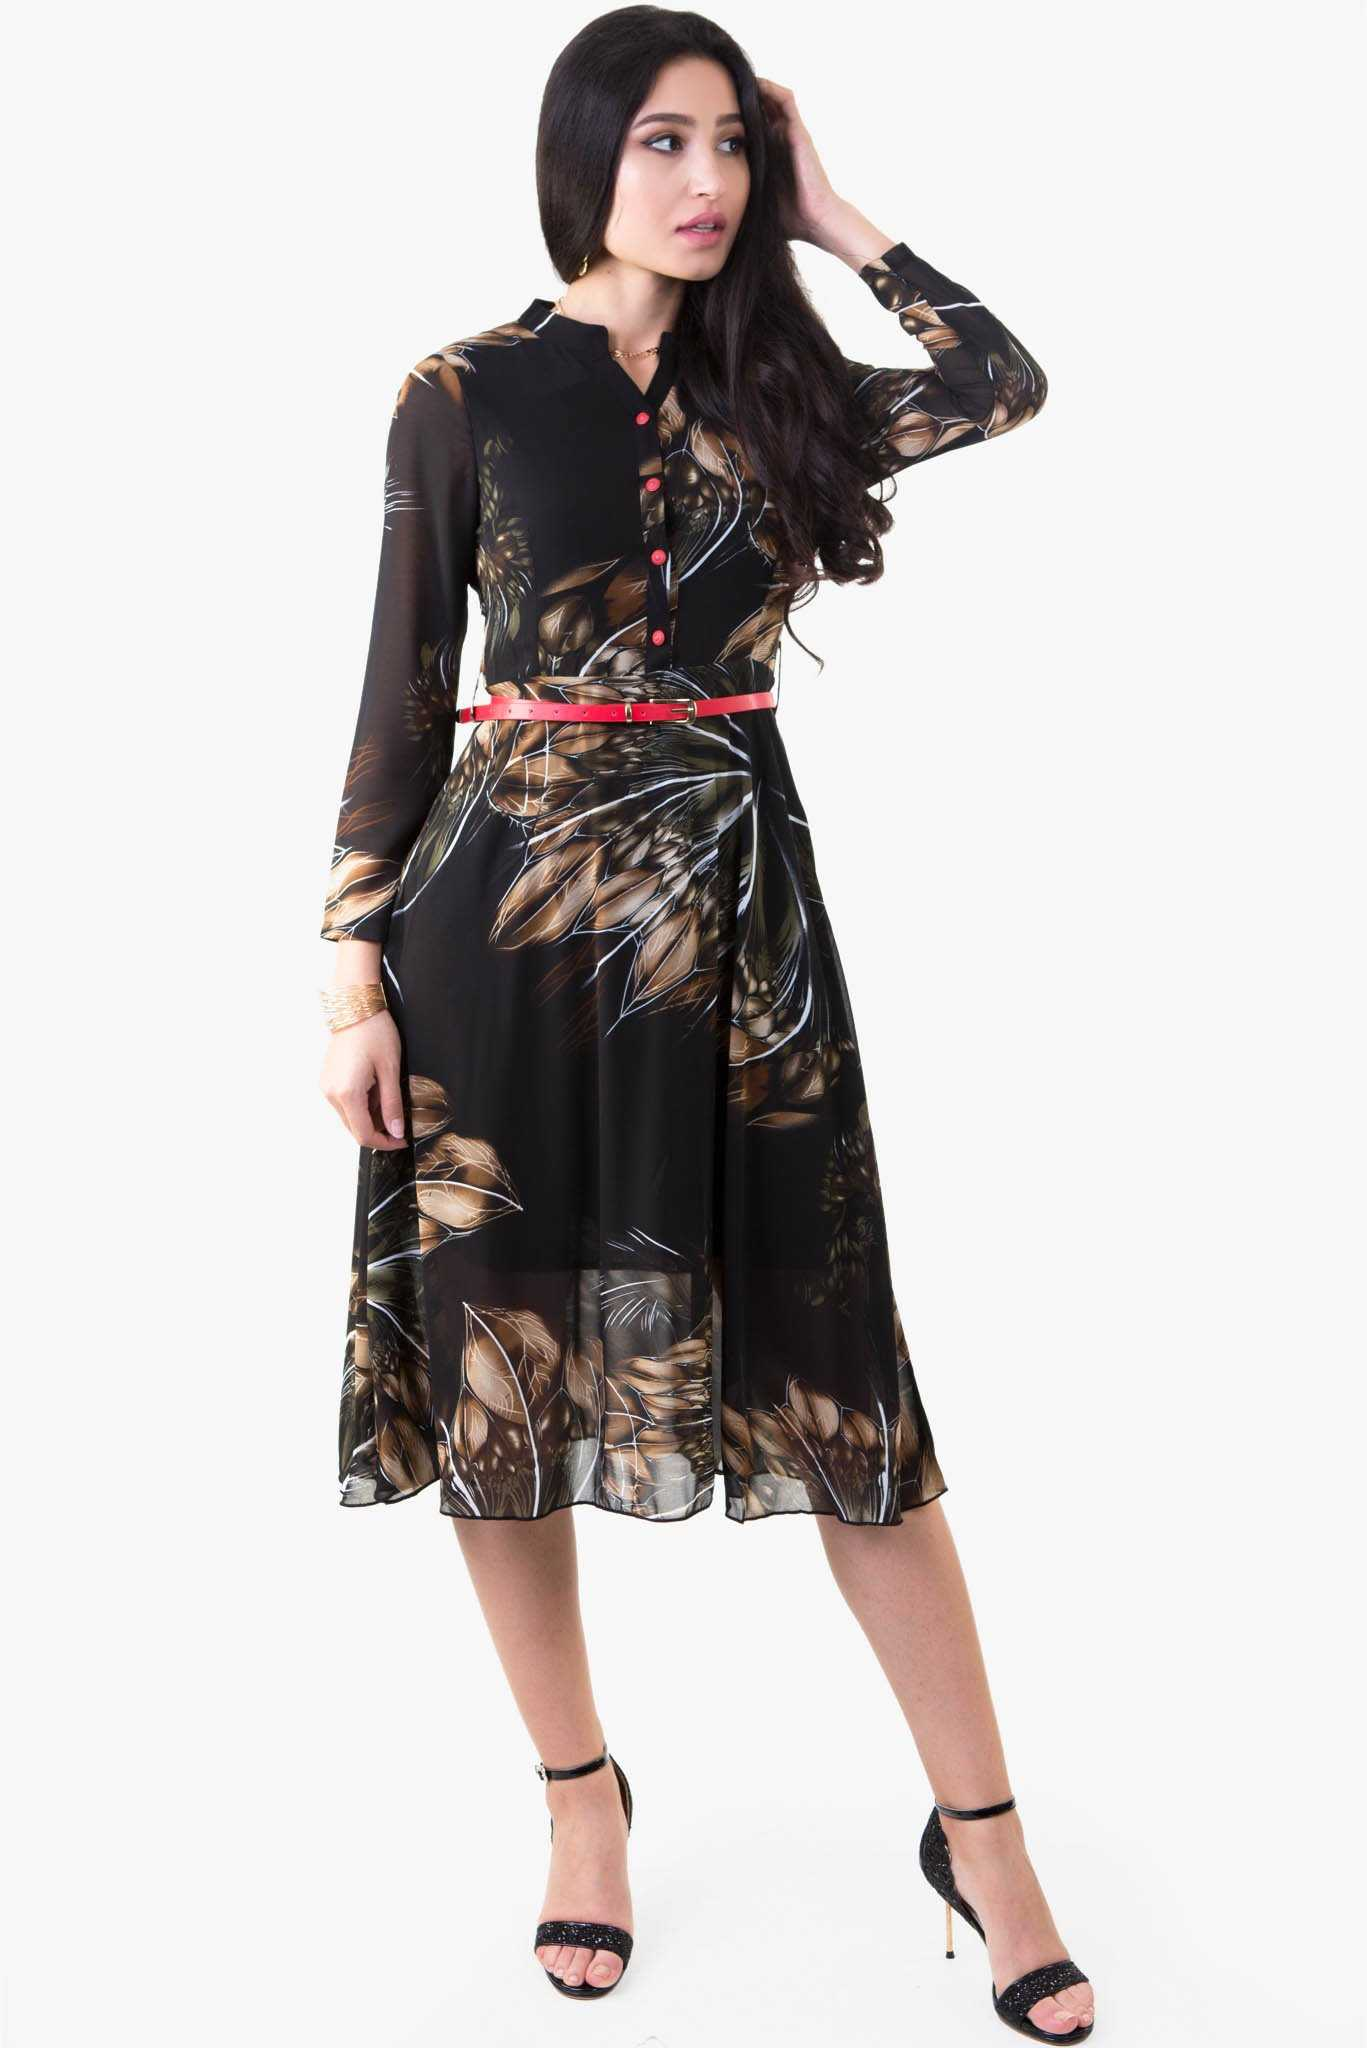 Blossom Floral Dress - Black | Raw Orange